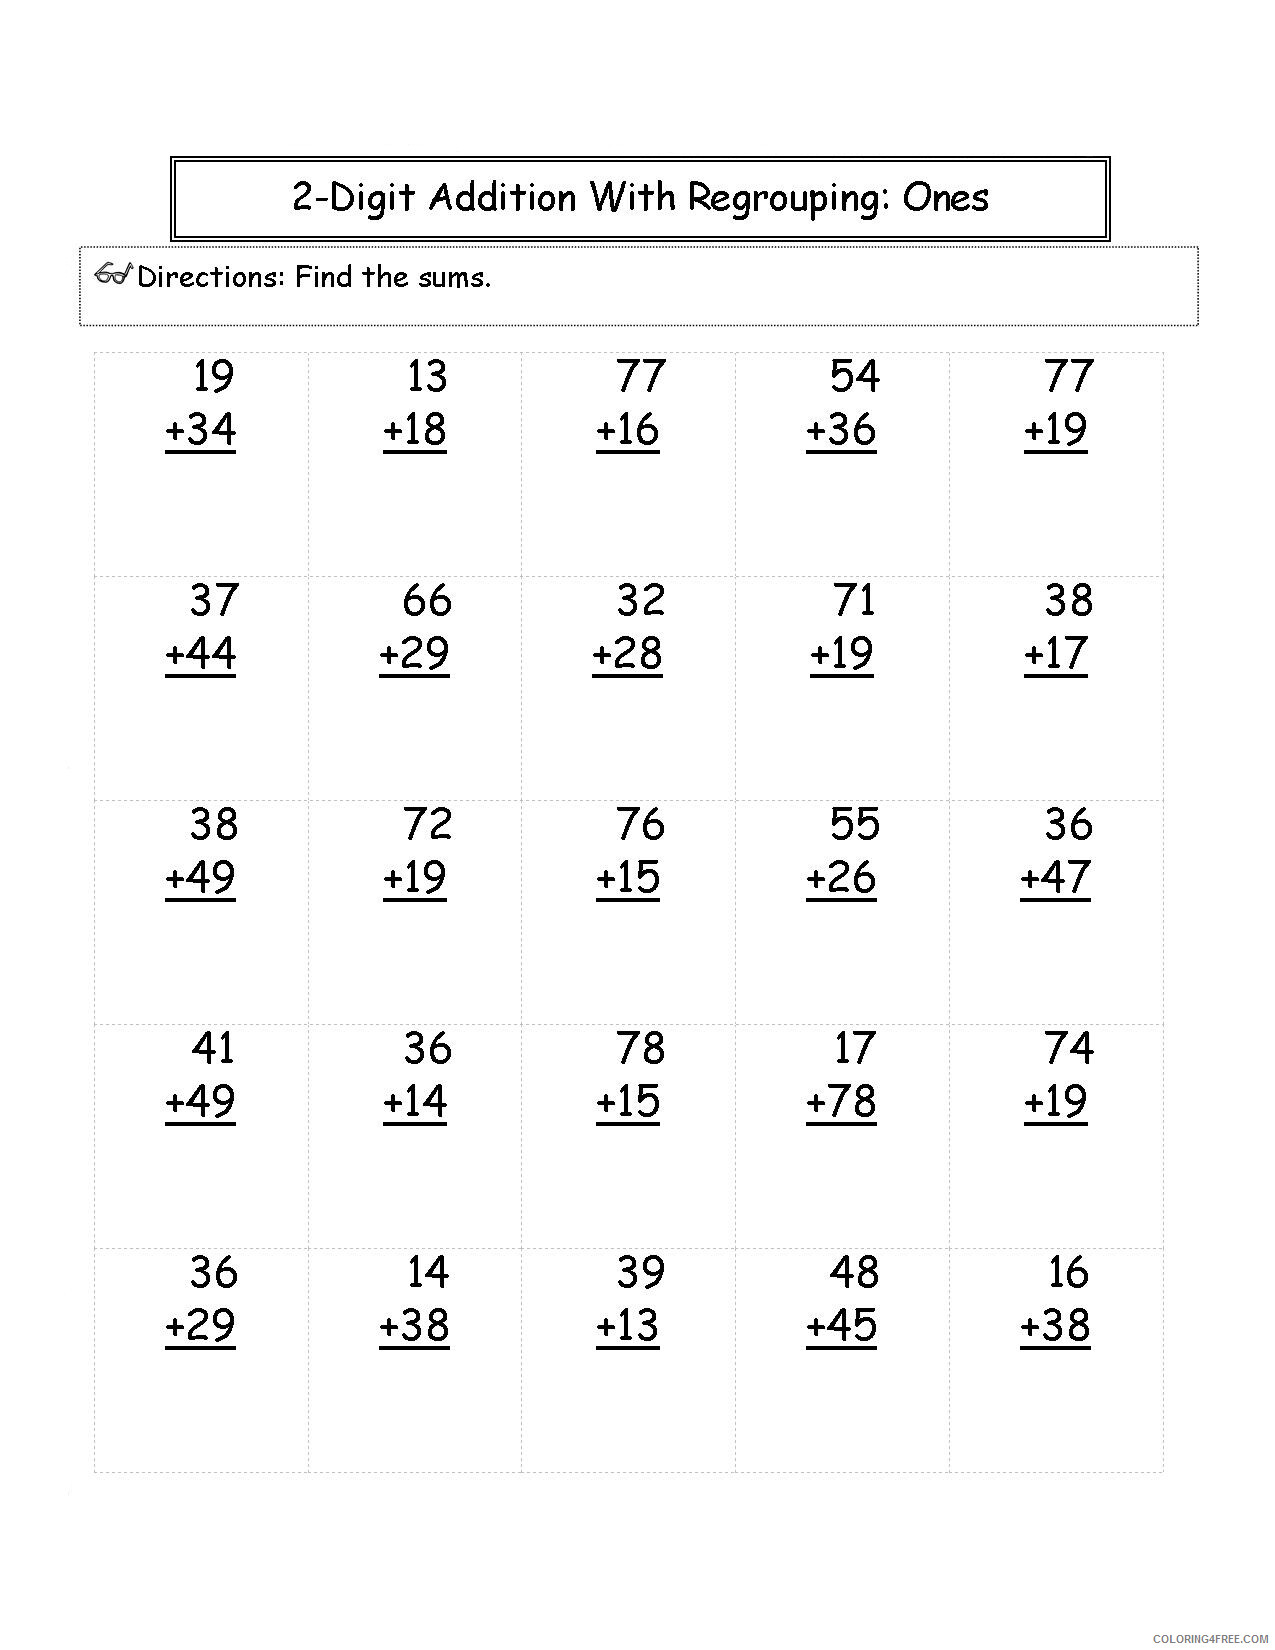 2nd Grade Coloring Pages Educational Math Worksheets 2 Digit Addition 2020 0146 Coloring4free Coloring4free Com [ 1650 x 1275 Pixel ]